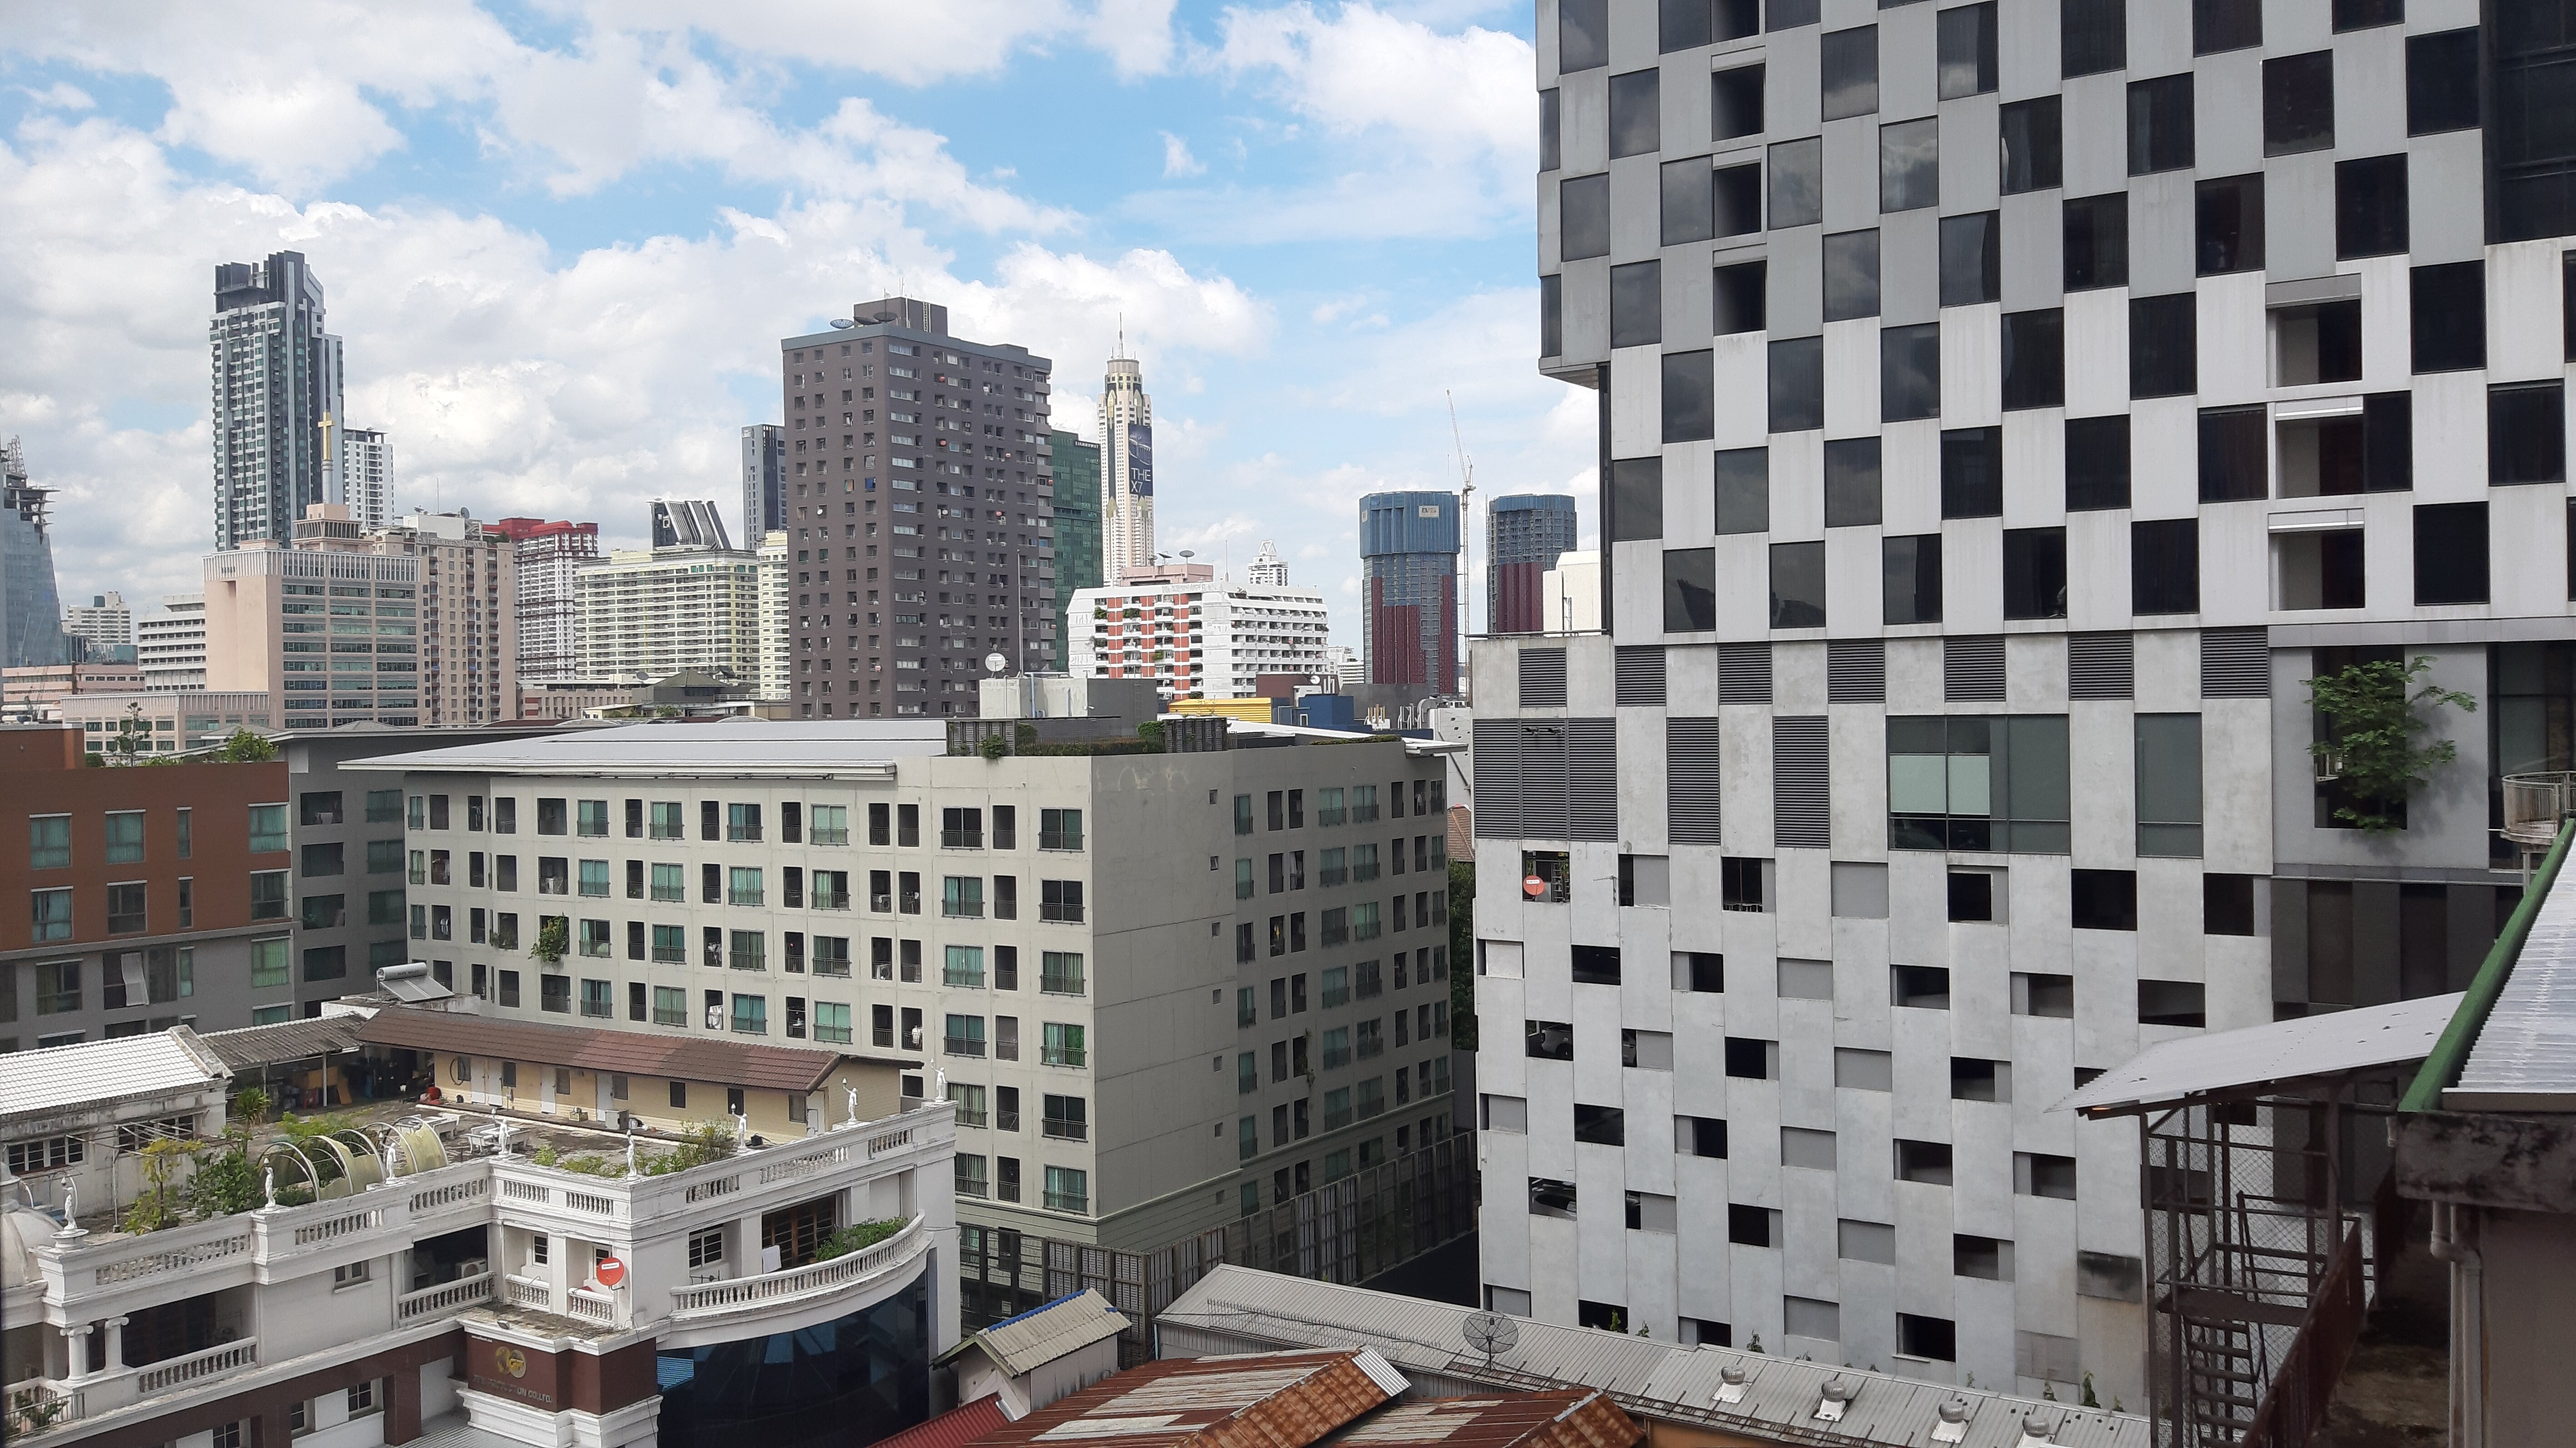 View from my room in Chao Hostel Bangkok.